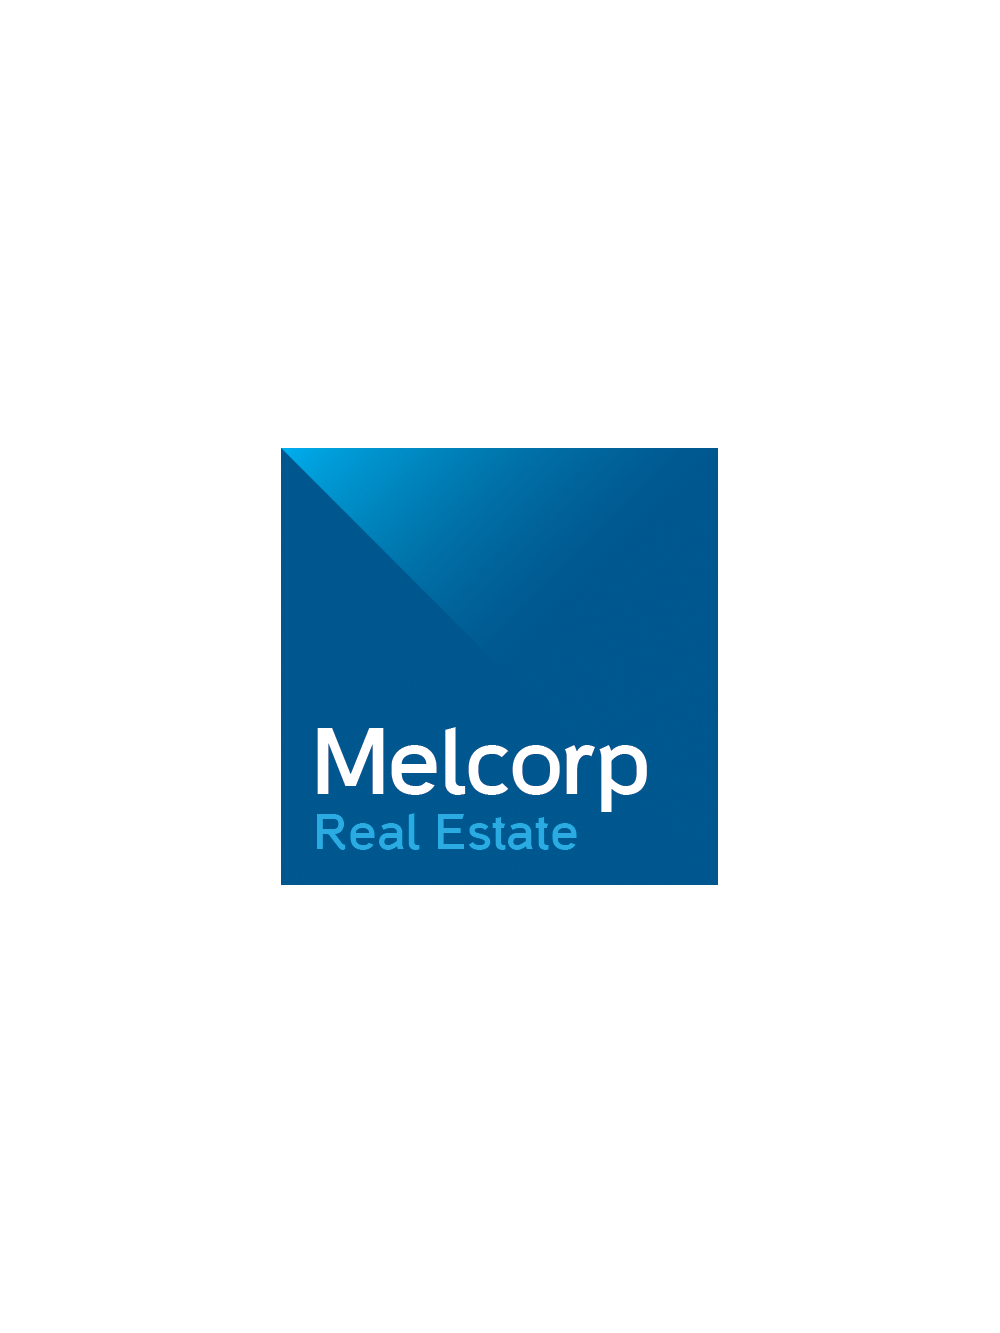 melcorp_1000x1333.png